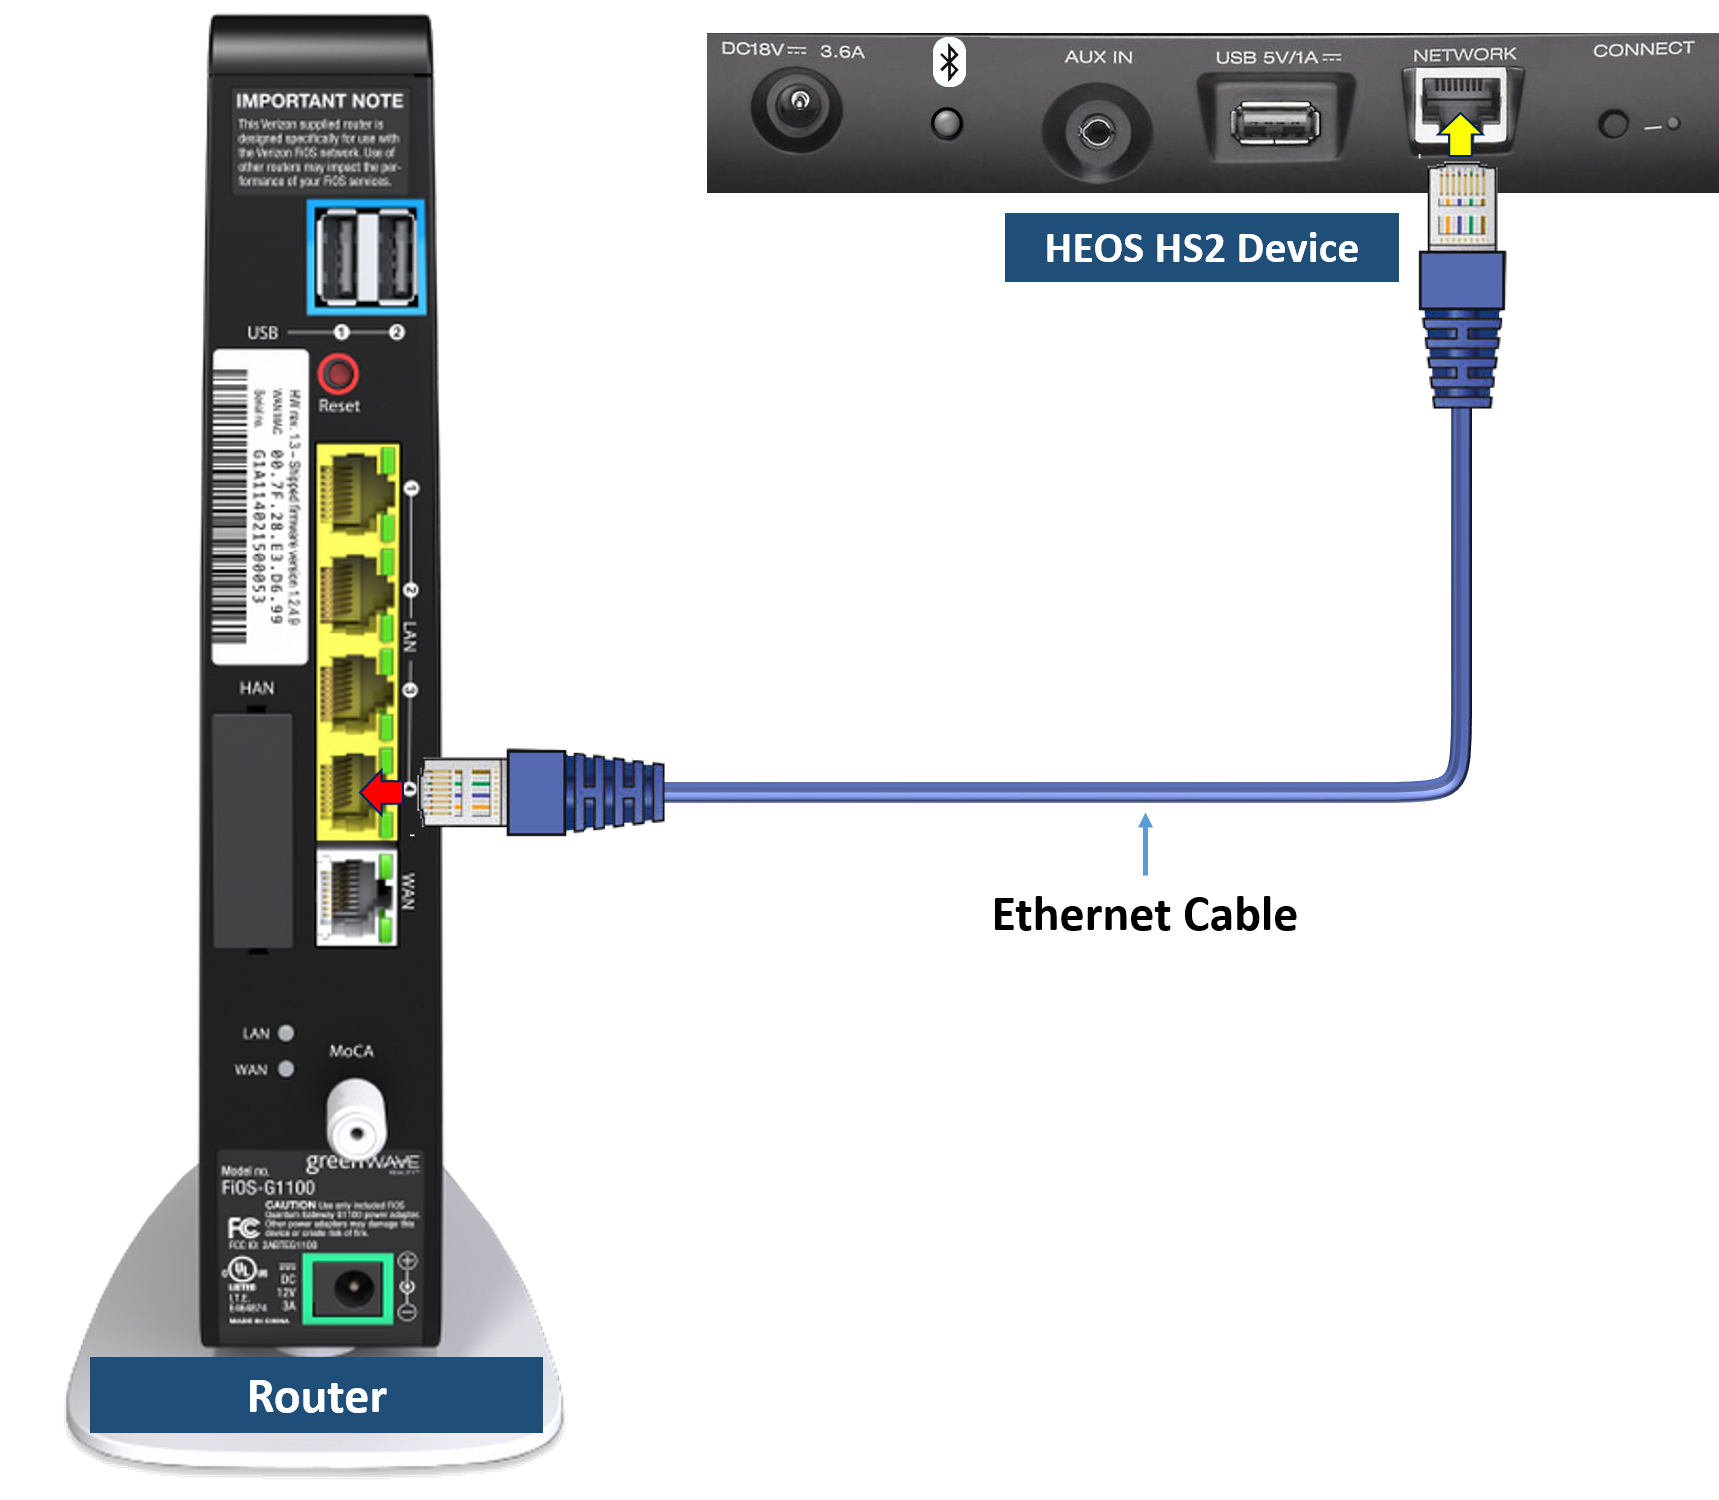 HEOS HS2 Alternative Network Connection Methods